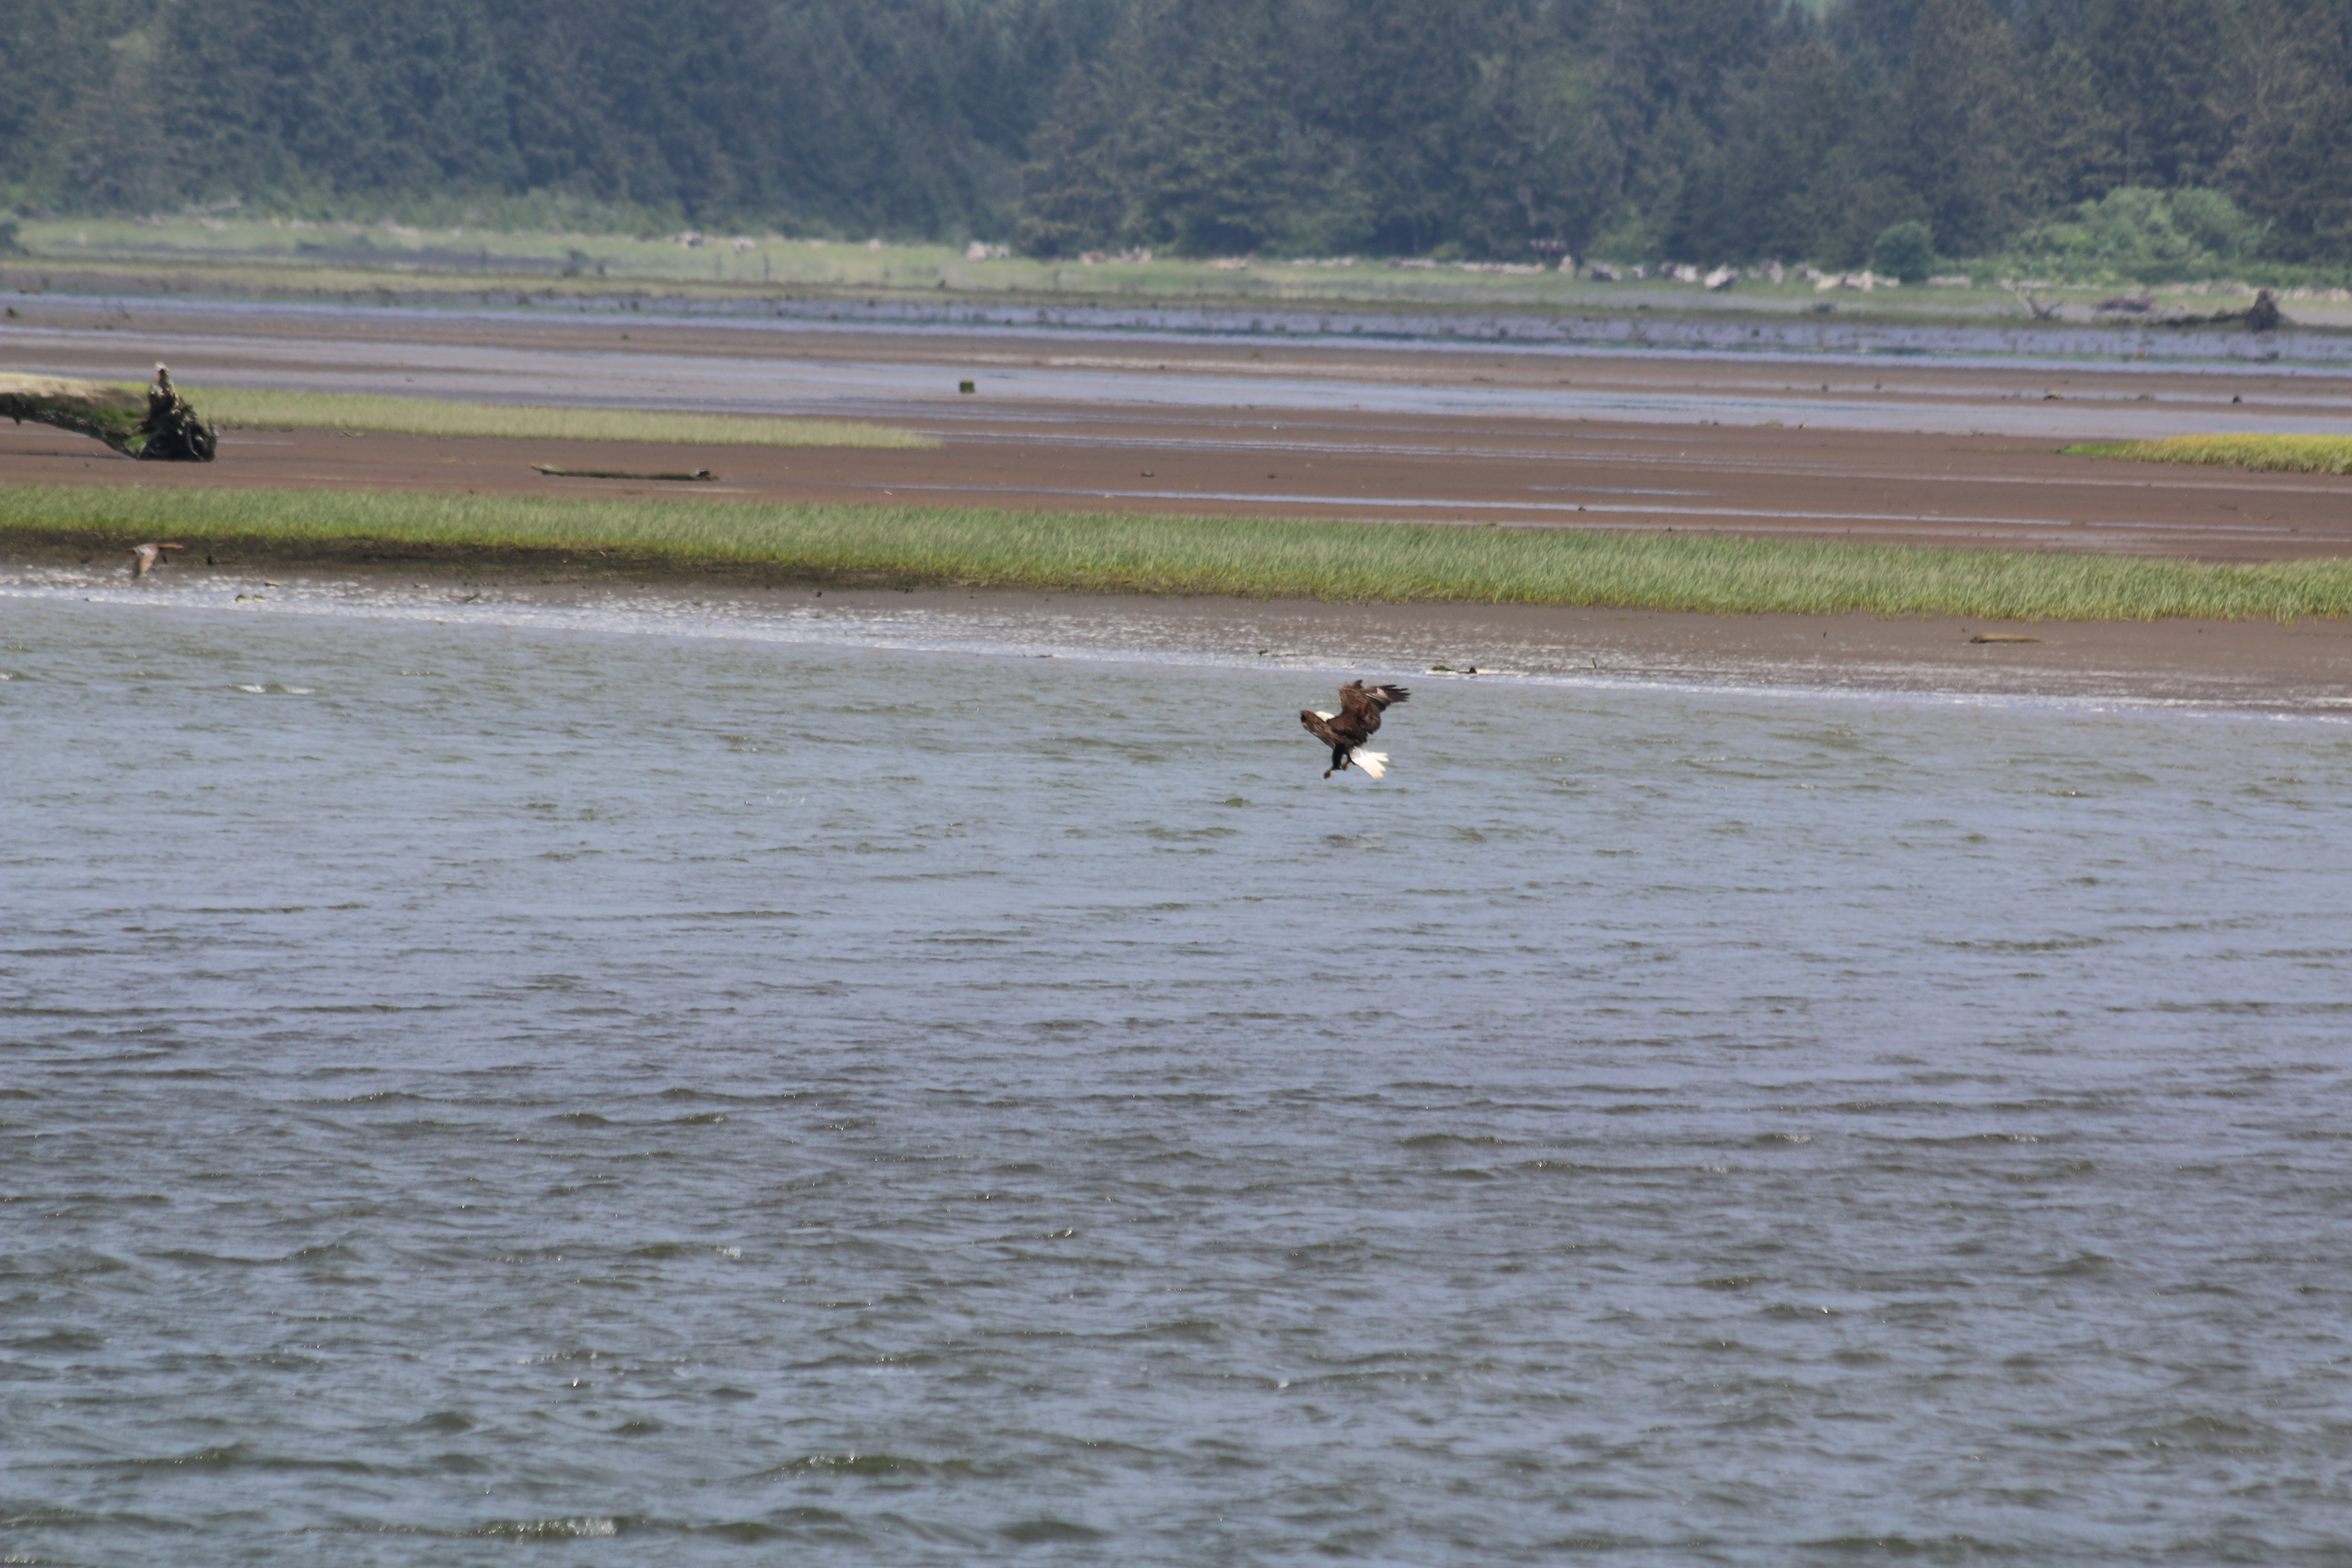 A bald eagle about to strike at a fish.